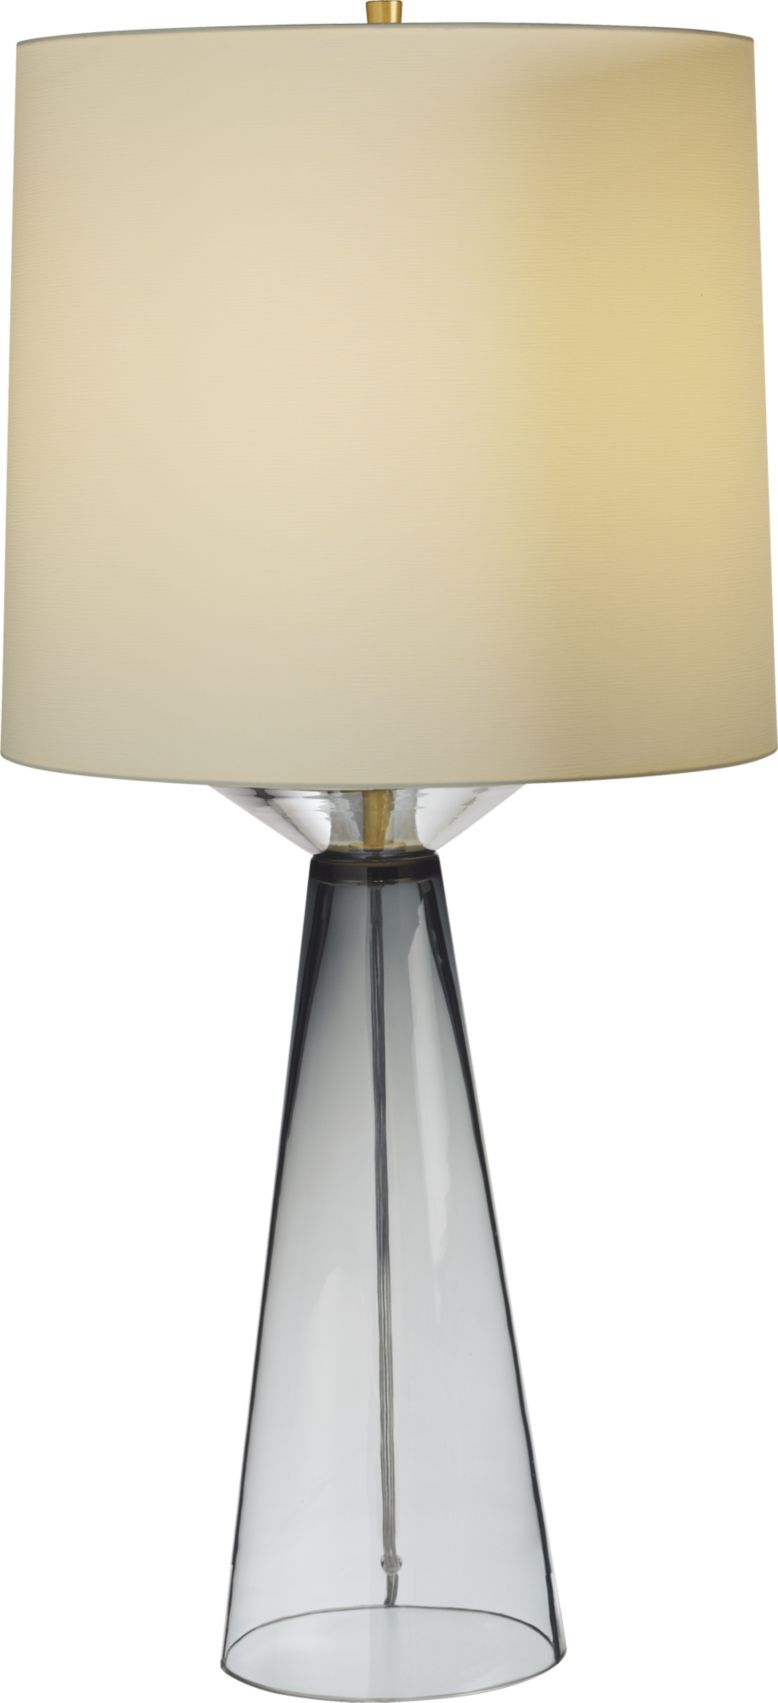 Waistline table lamp tall by barbara barry bb131 baker furniture geotapseo Image collections